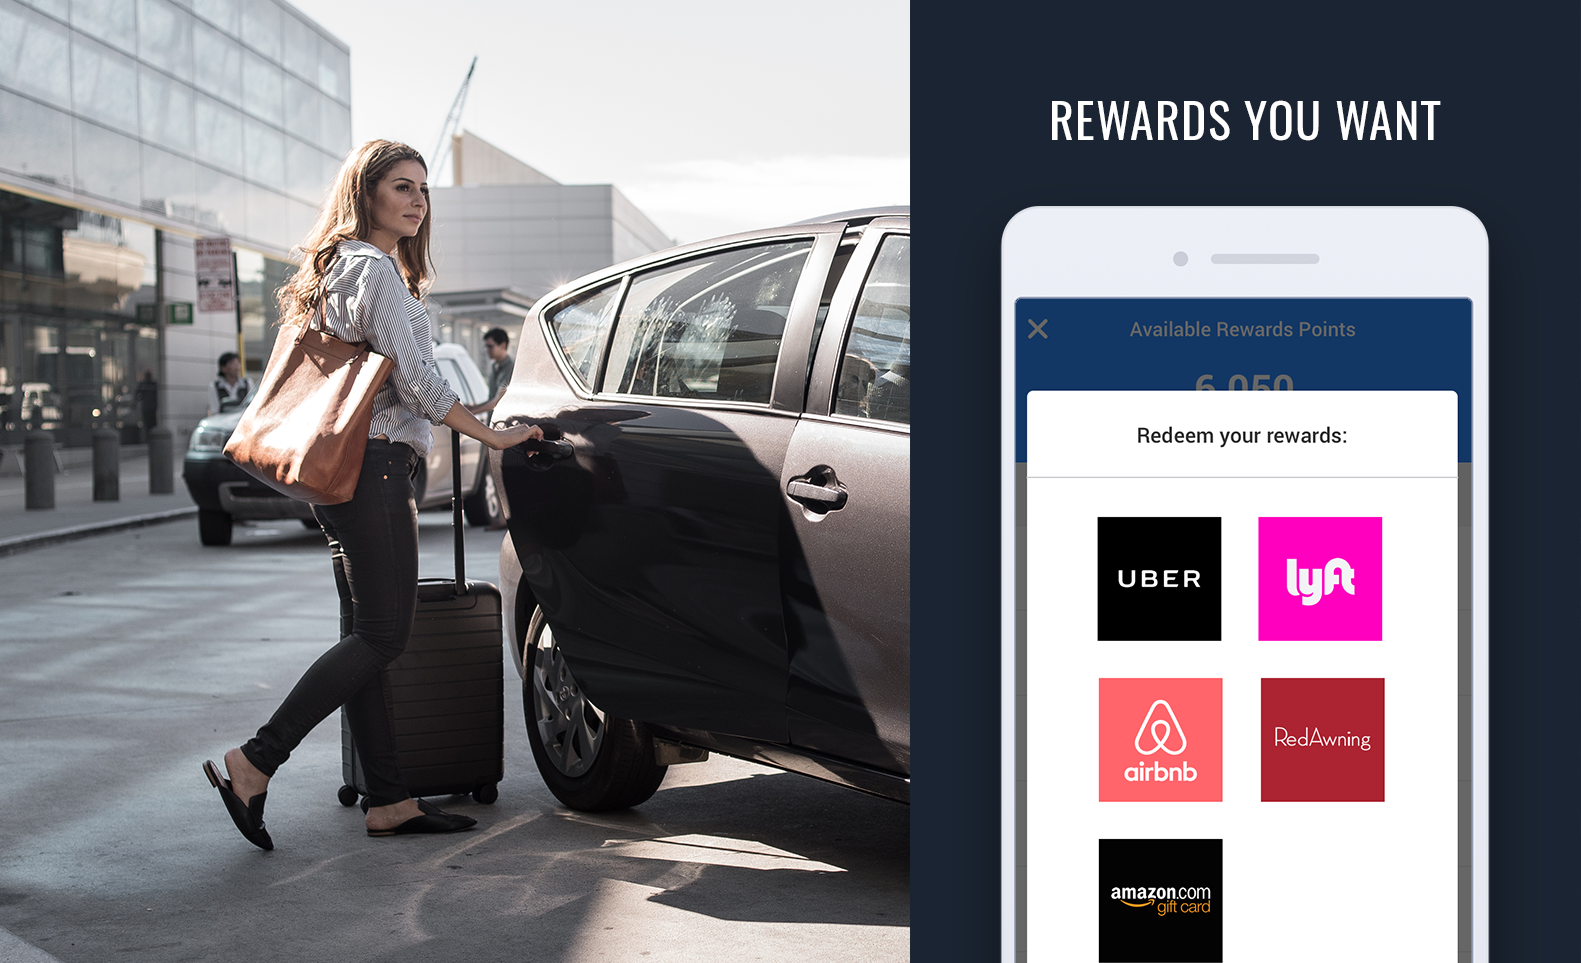 Rewards for employees